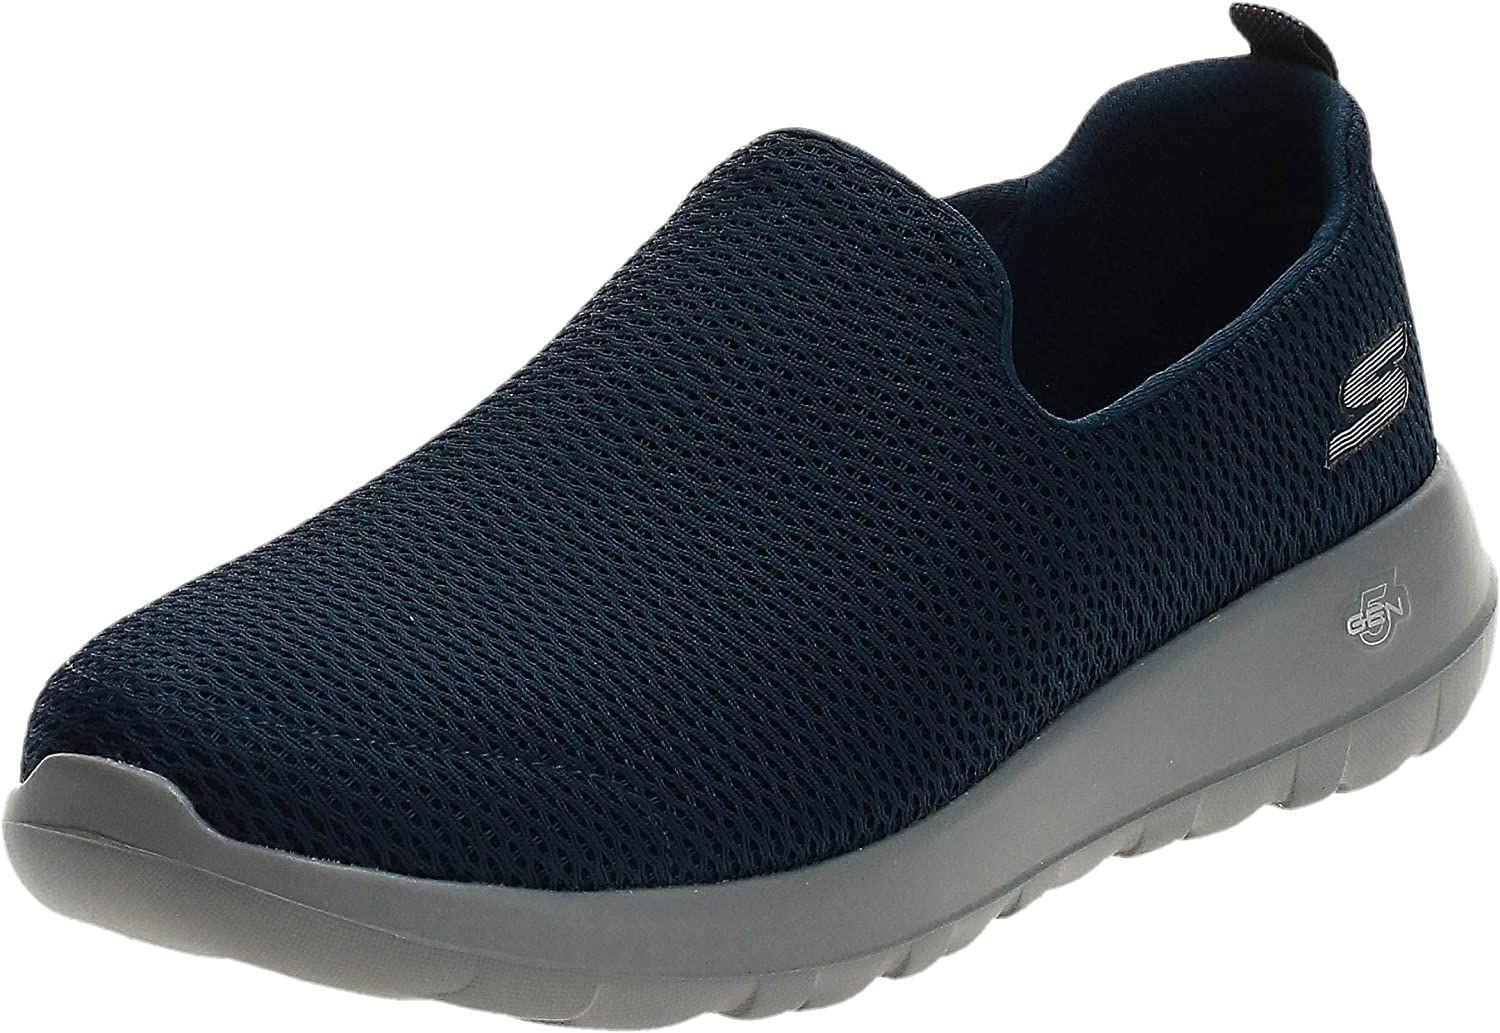 Skechers Men's Go Max-Athletic Air Mesh Slip on Walking Shoe Sneaker